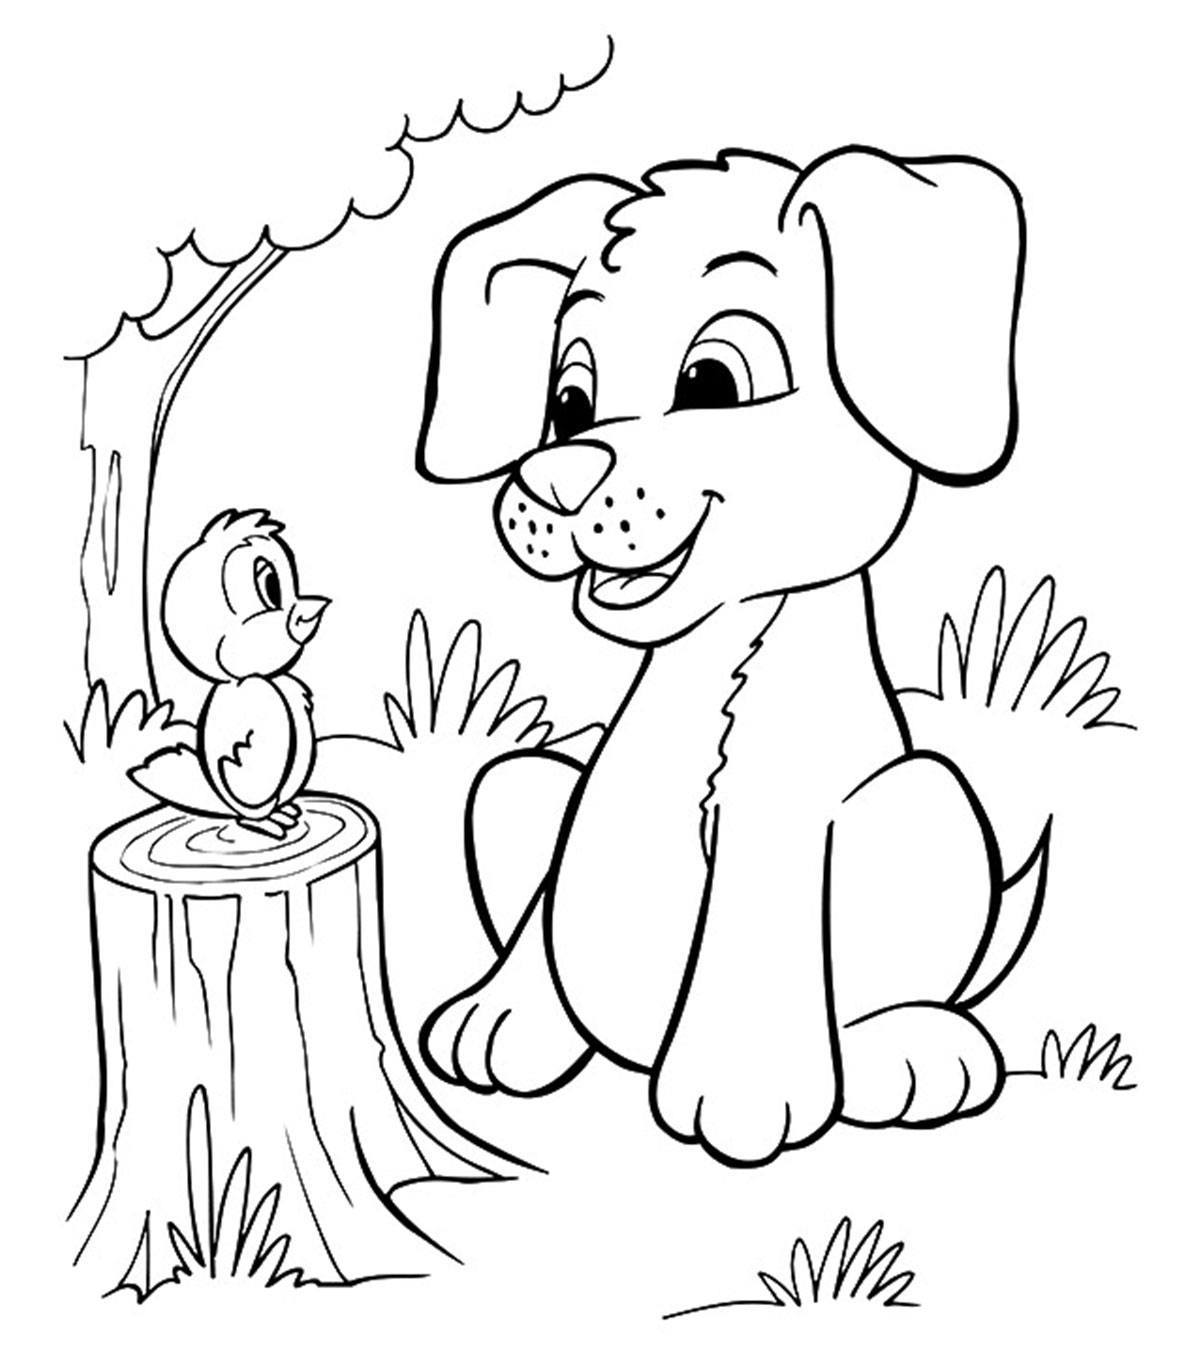 Gratifying Printable Puppy Coloring Pages